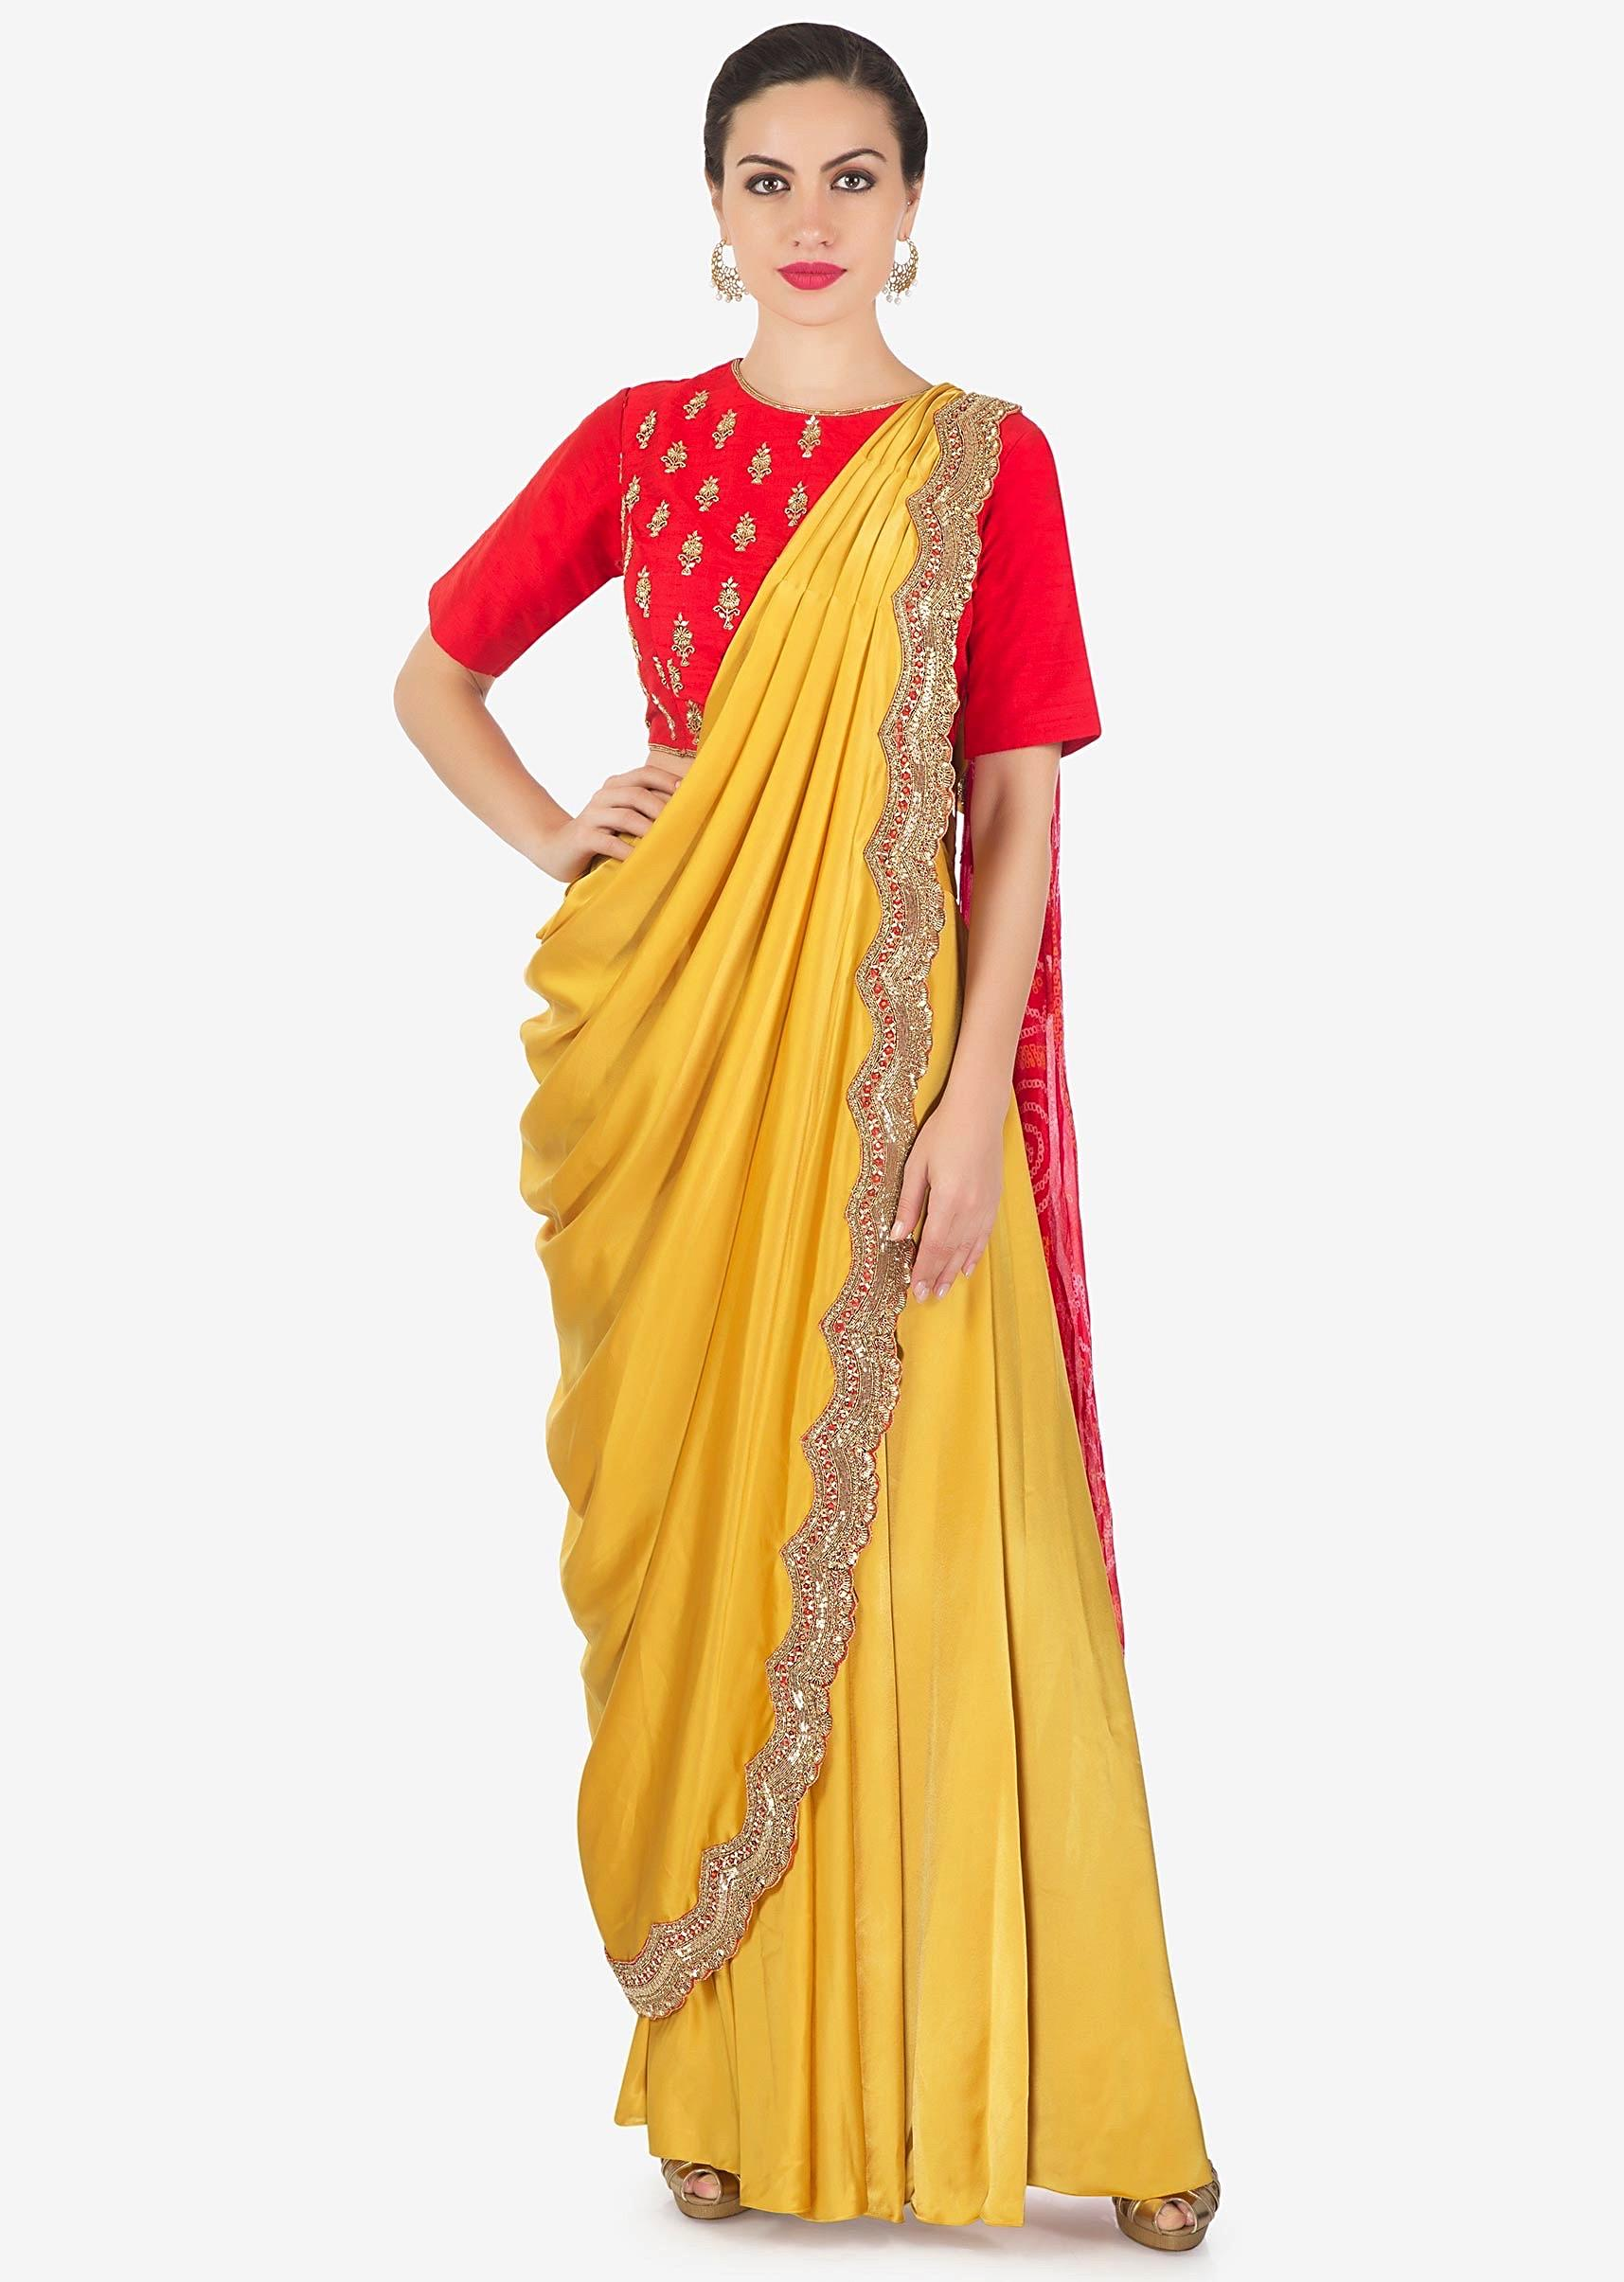 aa32428f8f98fb Chrome yellow and red lehenga set with pre stitched dupatta in bandhani  print only on KalkiMore Detail